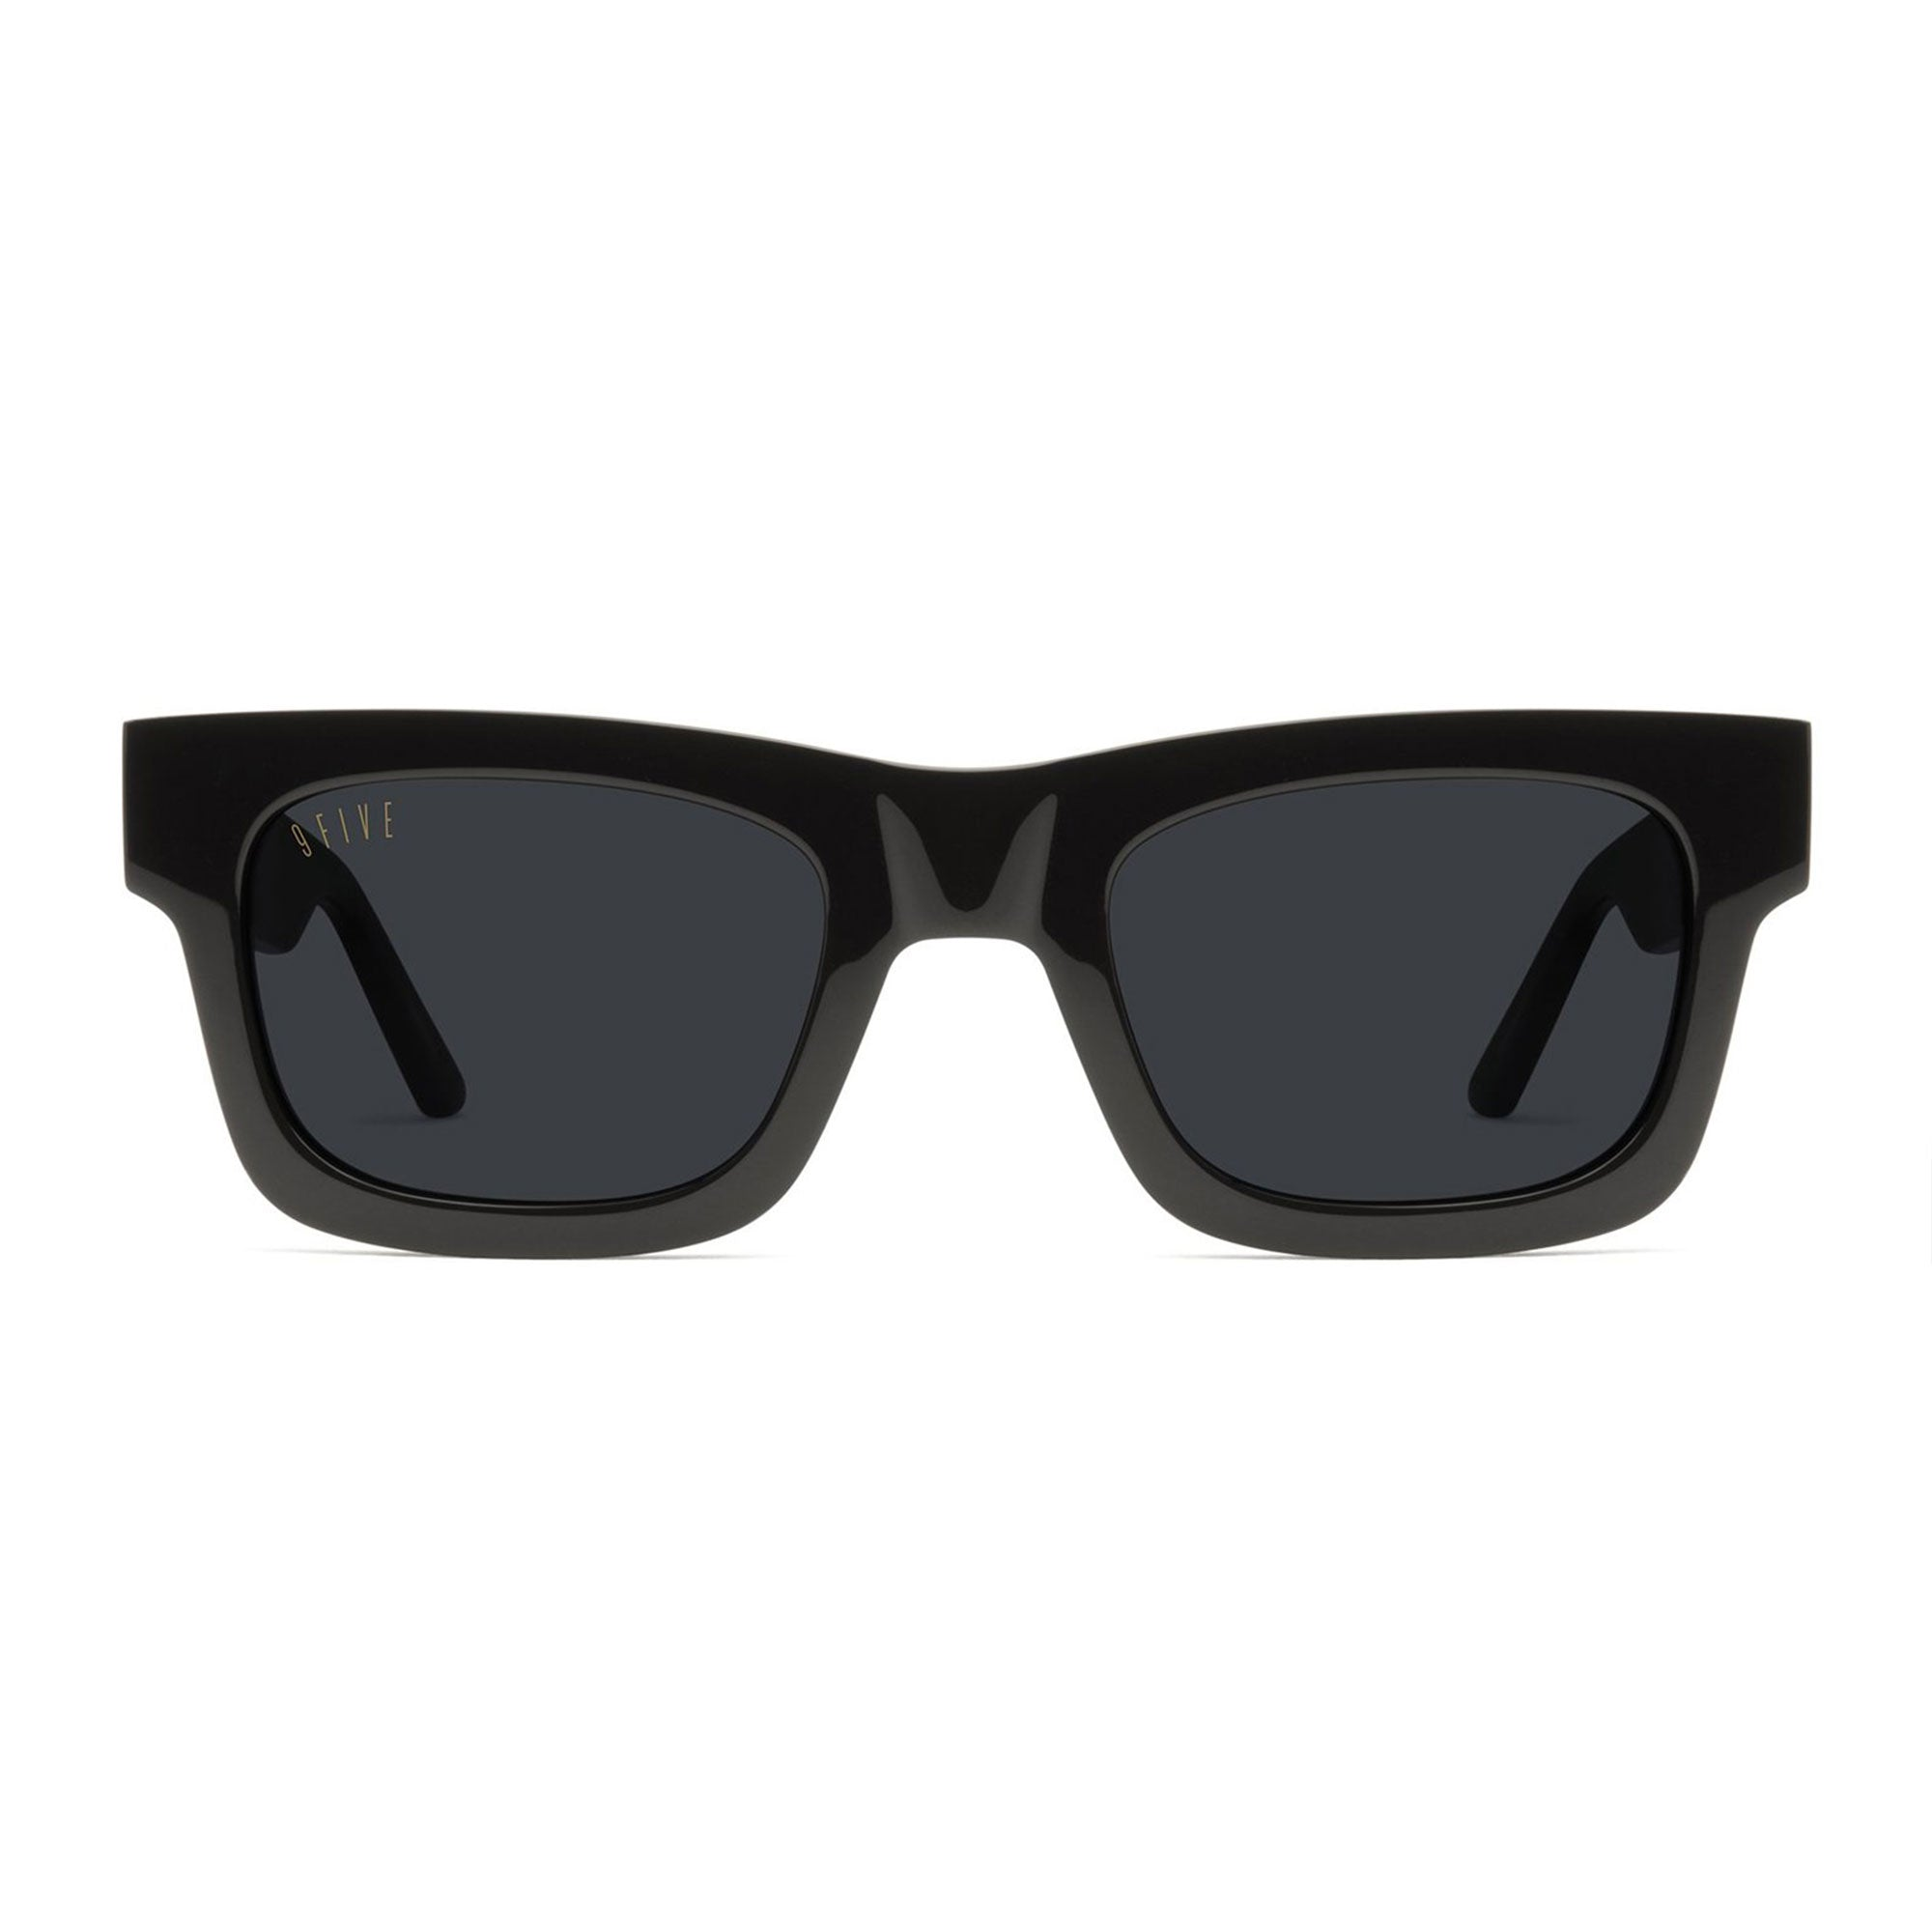 9FIVE Ayden Sunglasses - Black Product Photo #2